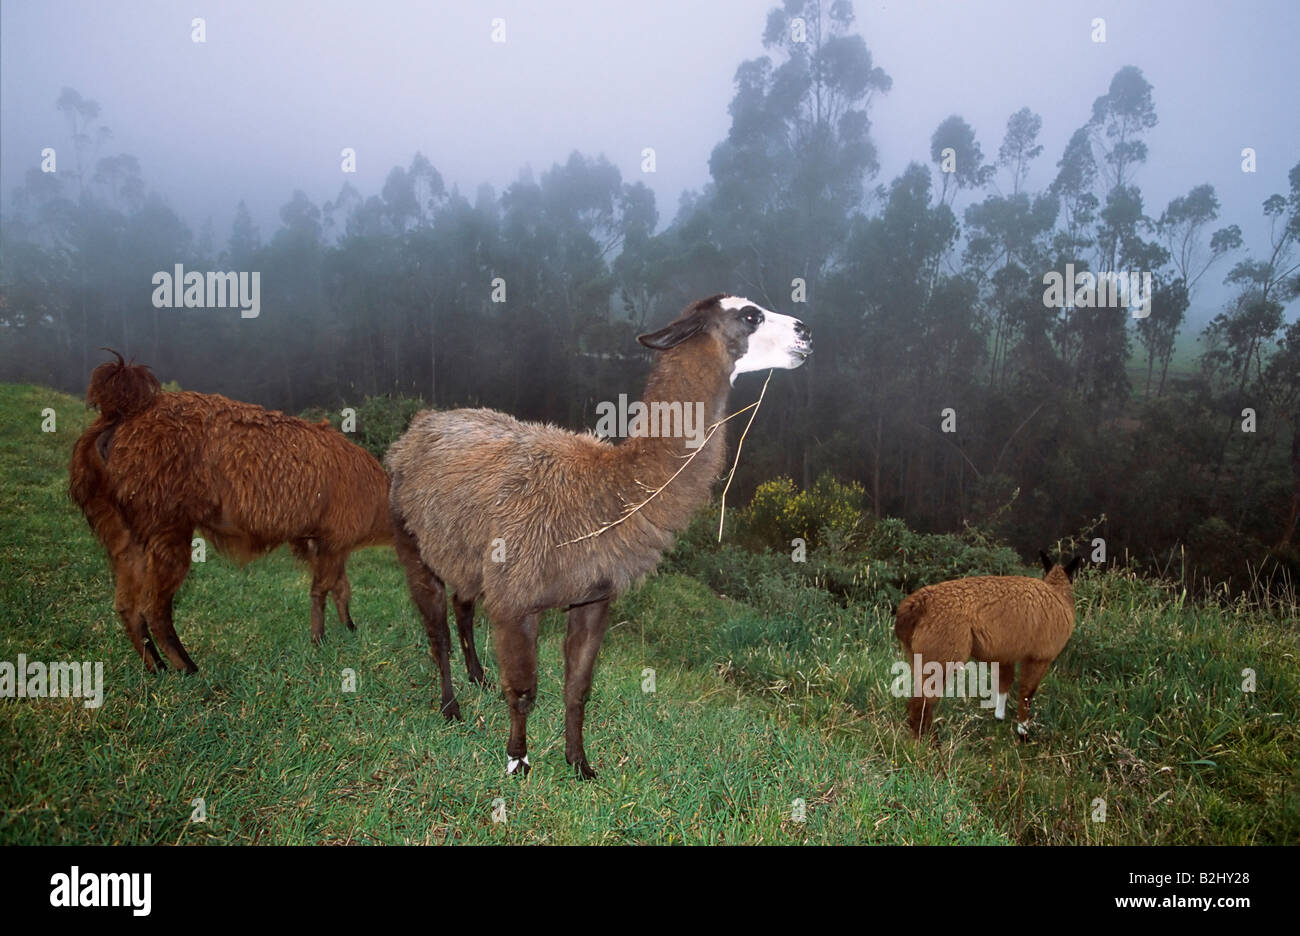 Lama Lama glama Ecuador South America highland mountain landscape Stock Photo